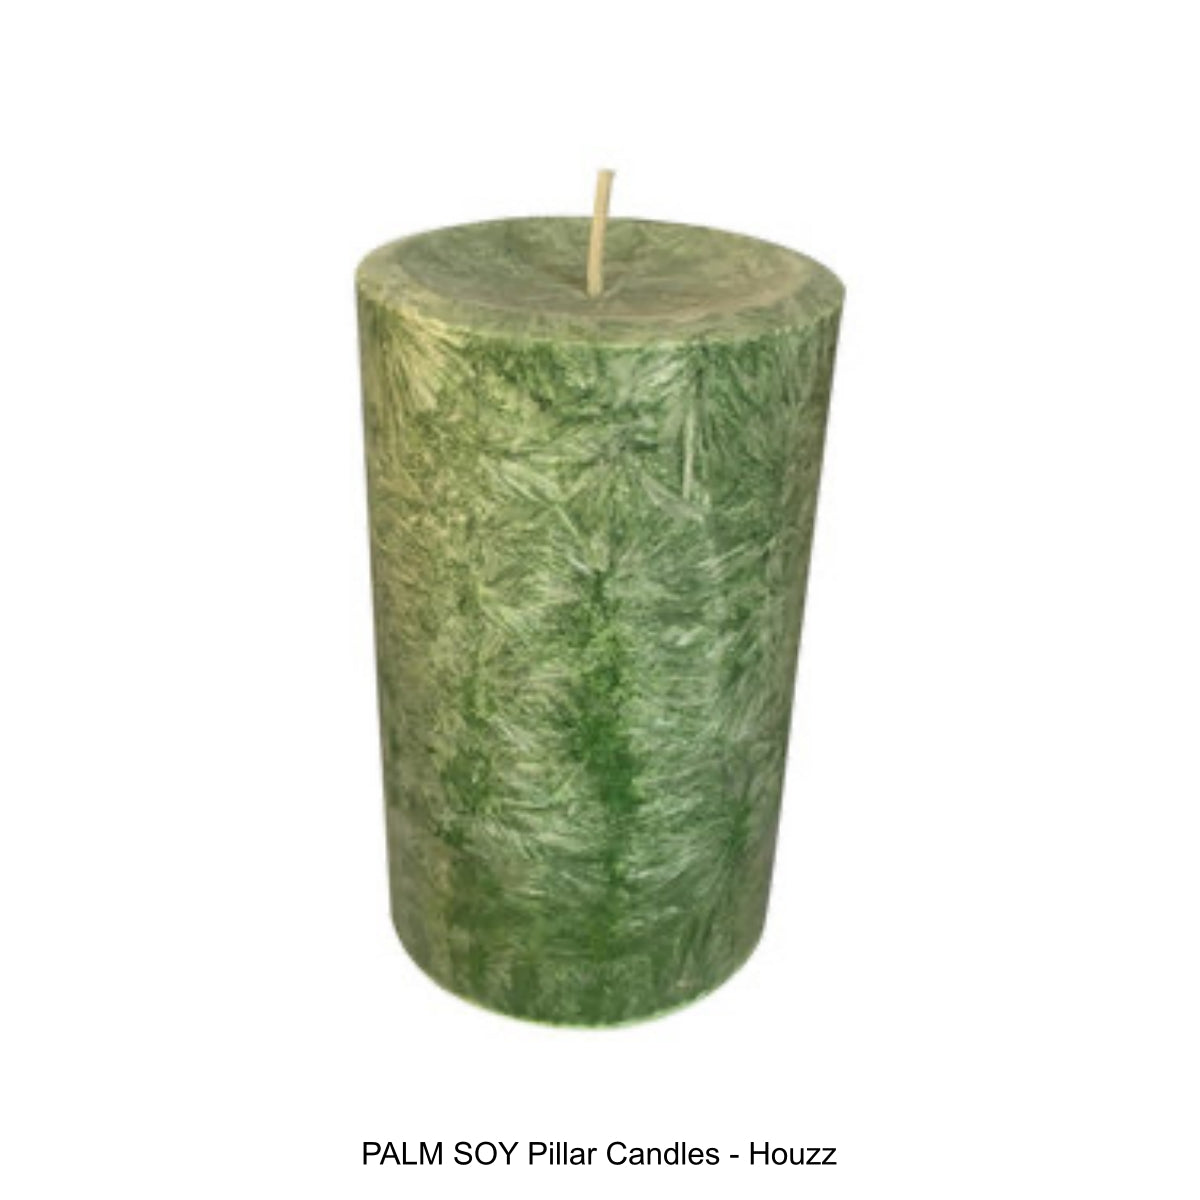 PALM SOY Pillar Candles - Houzz